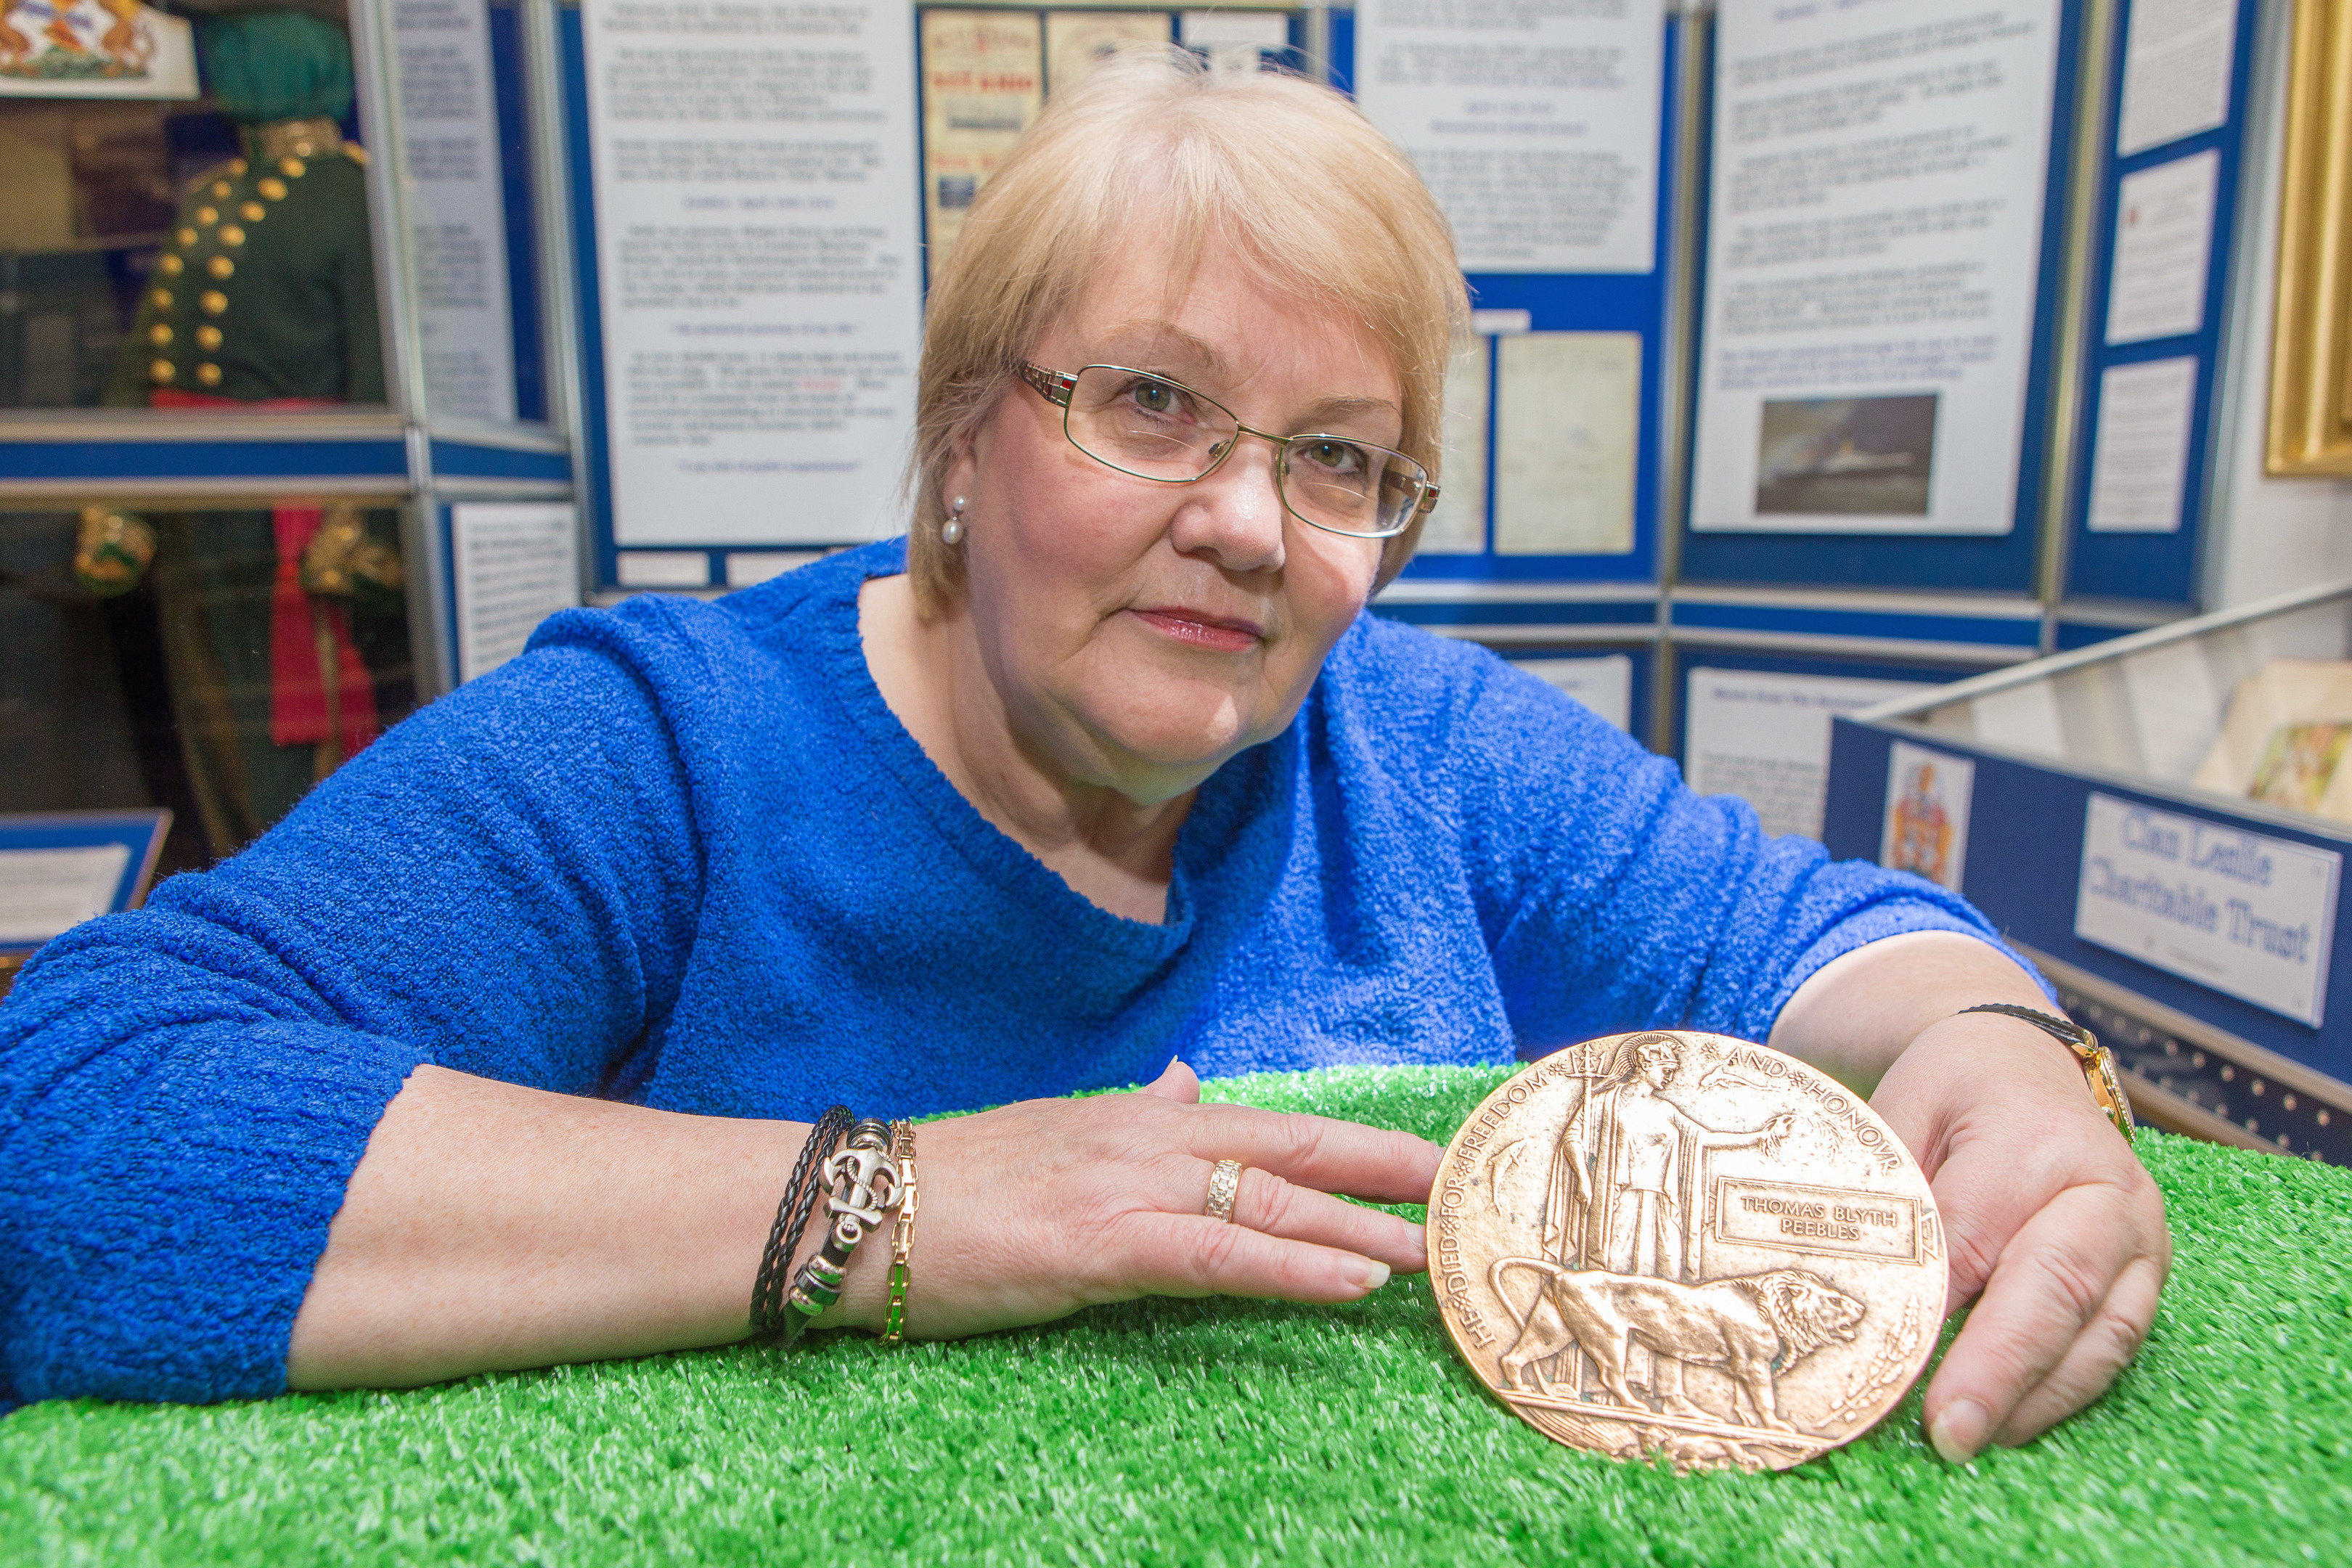 Linda Ballingall of Glenrothes Heritage Centre is trying to locate the family of Pvt Thomas Blyth Peebles to hand over the Death Penny.